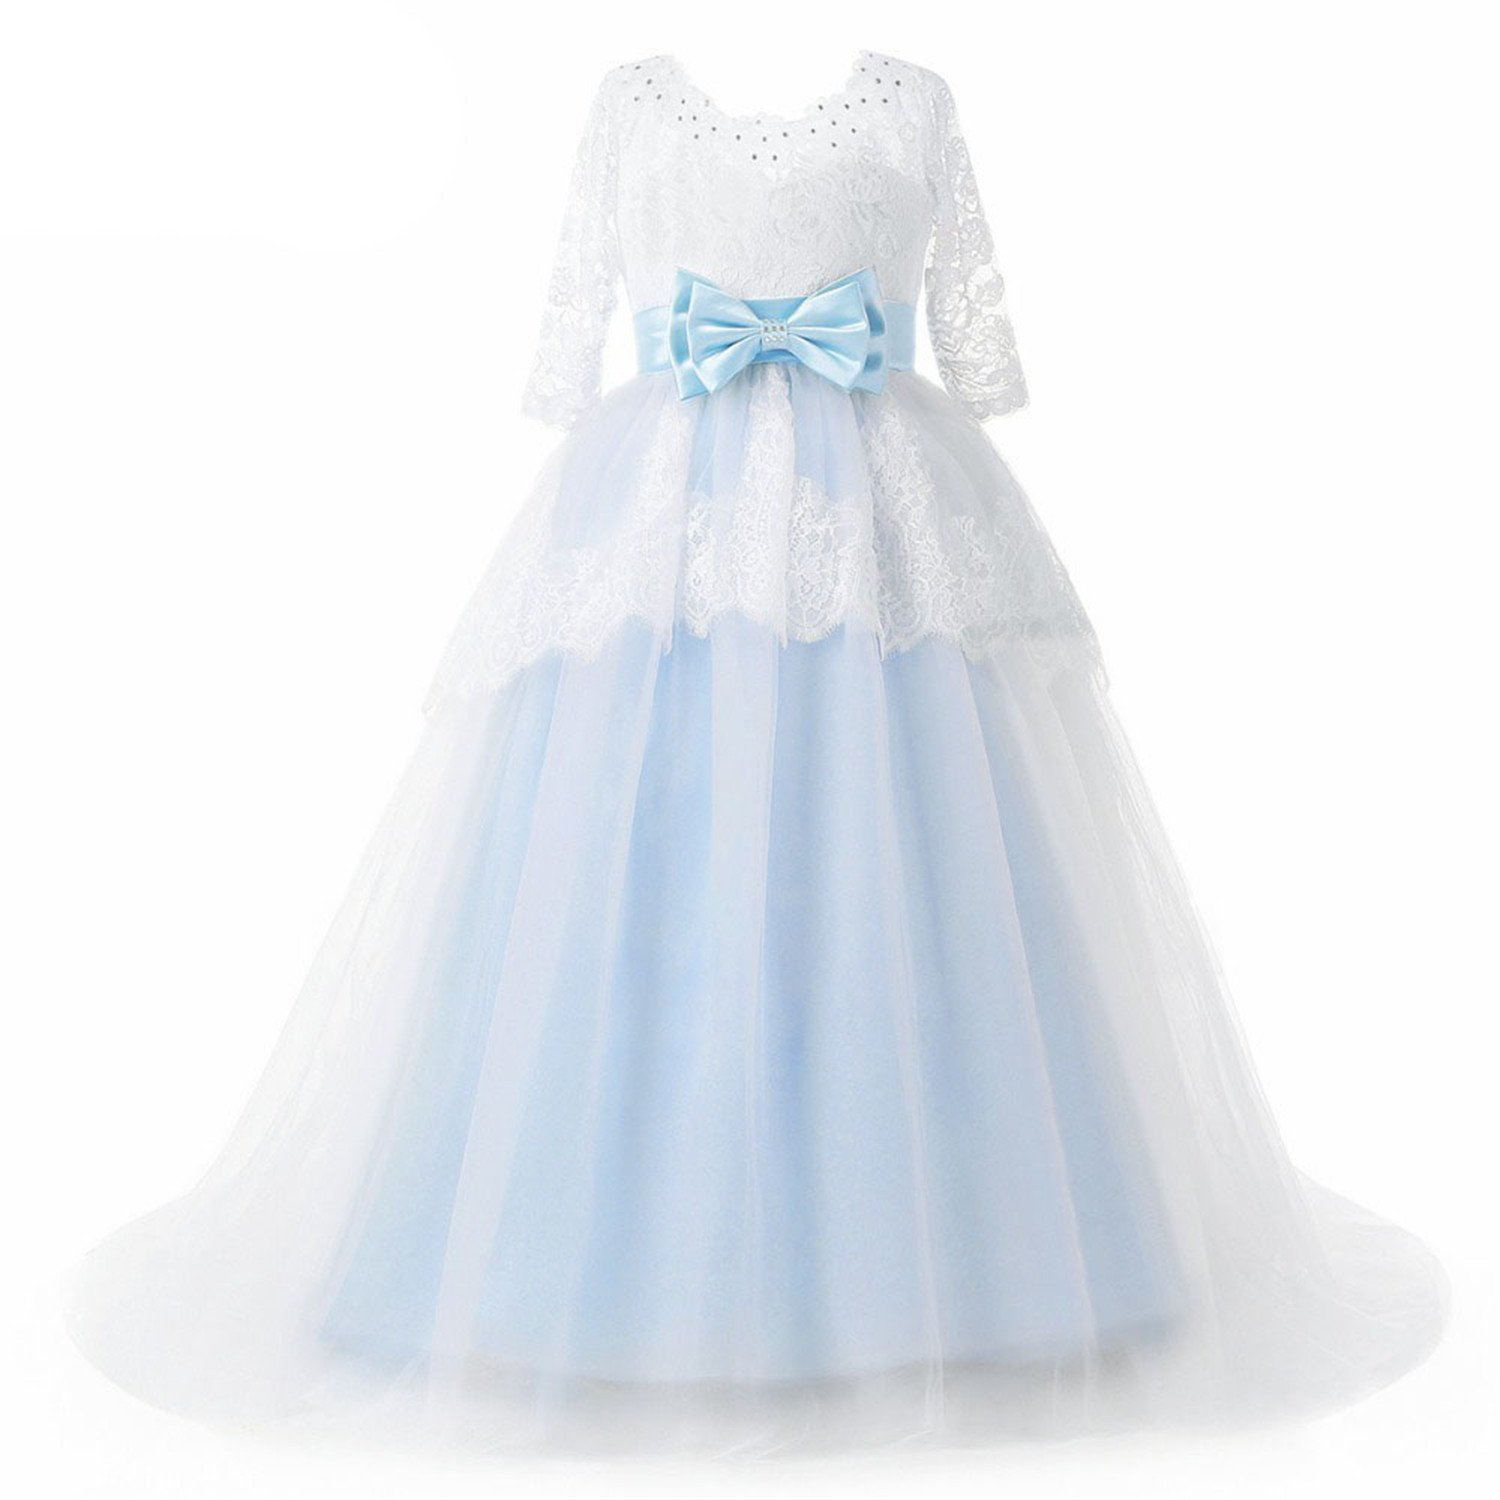 cd6daf378 Amazon.com: ylovego Light Blue Flower Girl Dresses with Sleeve Lace Kids  Occasion Dresses Bows 2018: Clothing